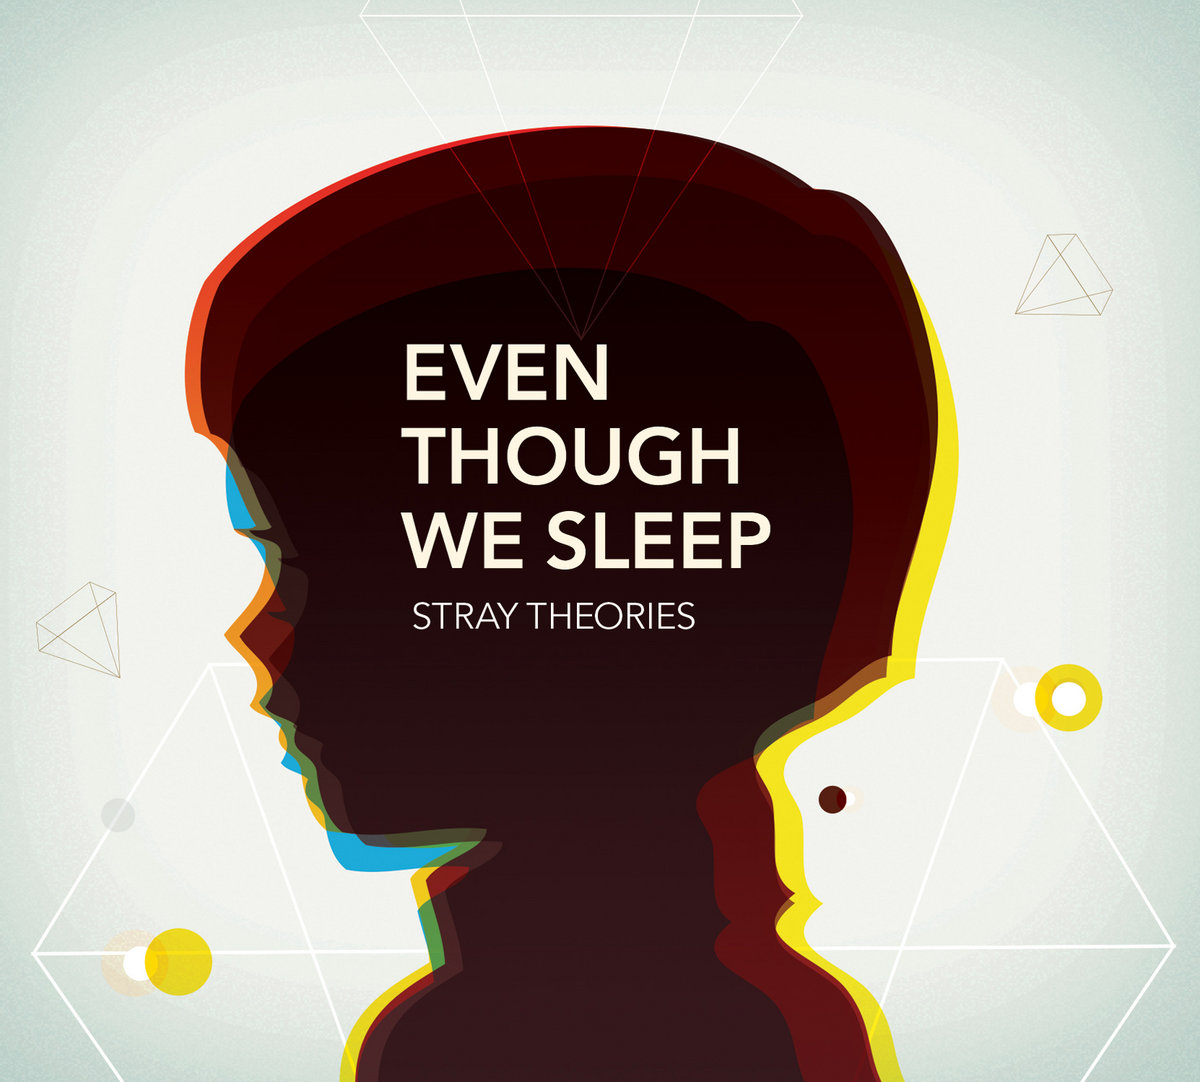 sleep theories Discuss two theories of sleep one theory of sleep is that it is needed for physical and psychological restoration and repair oswald 1966 said that sleep was.